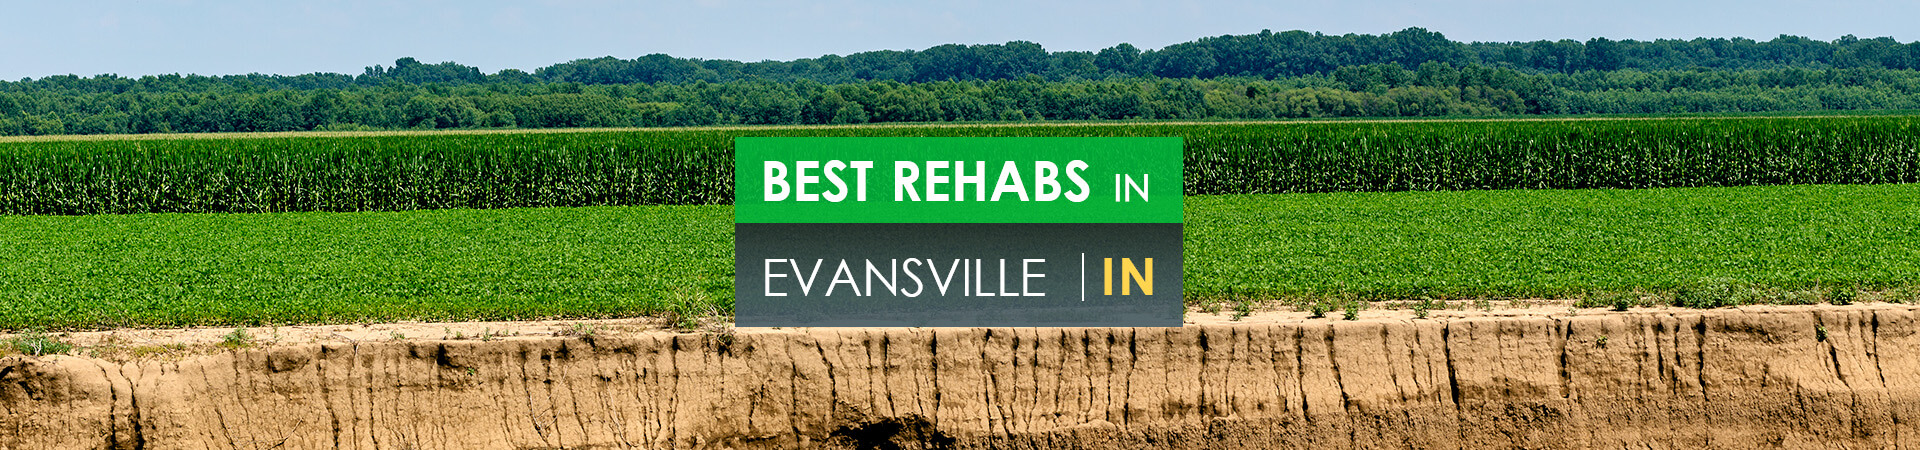 Best rehabs in Evansville, IN